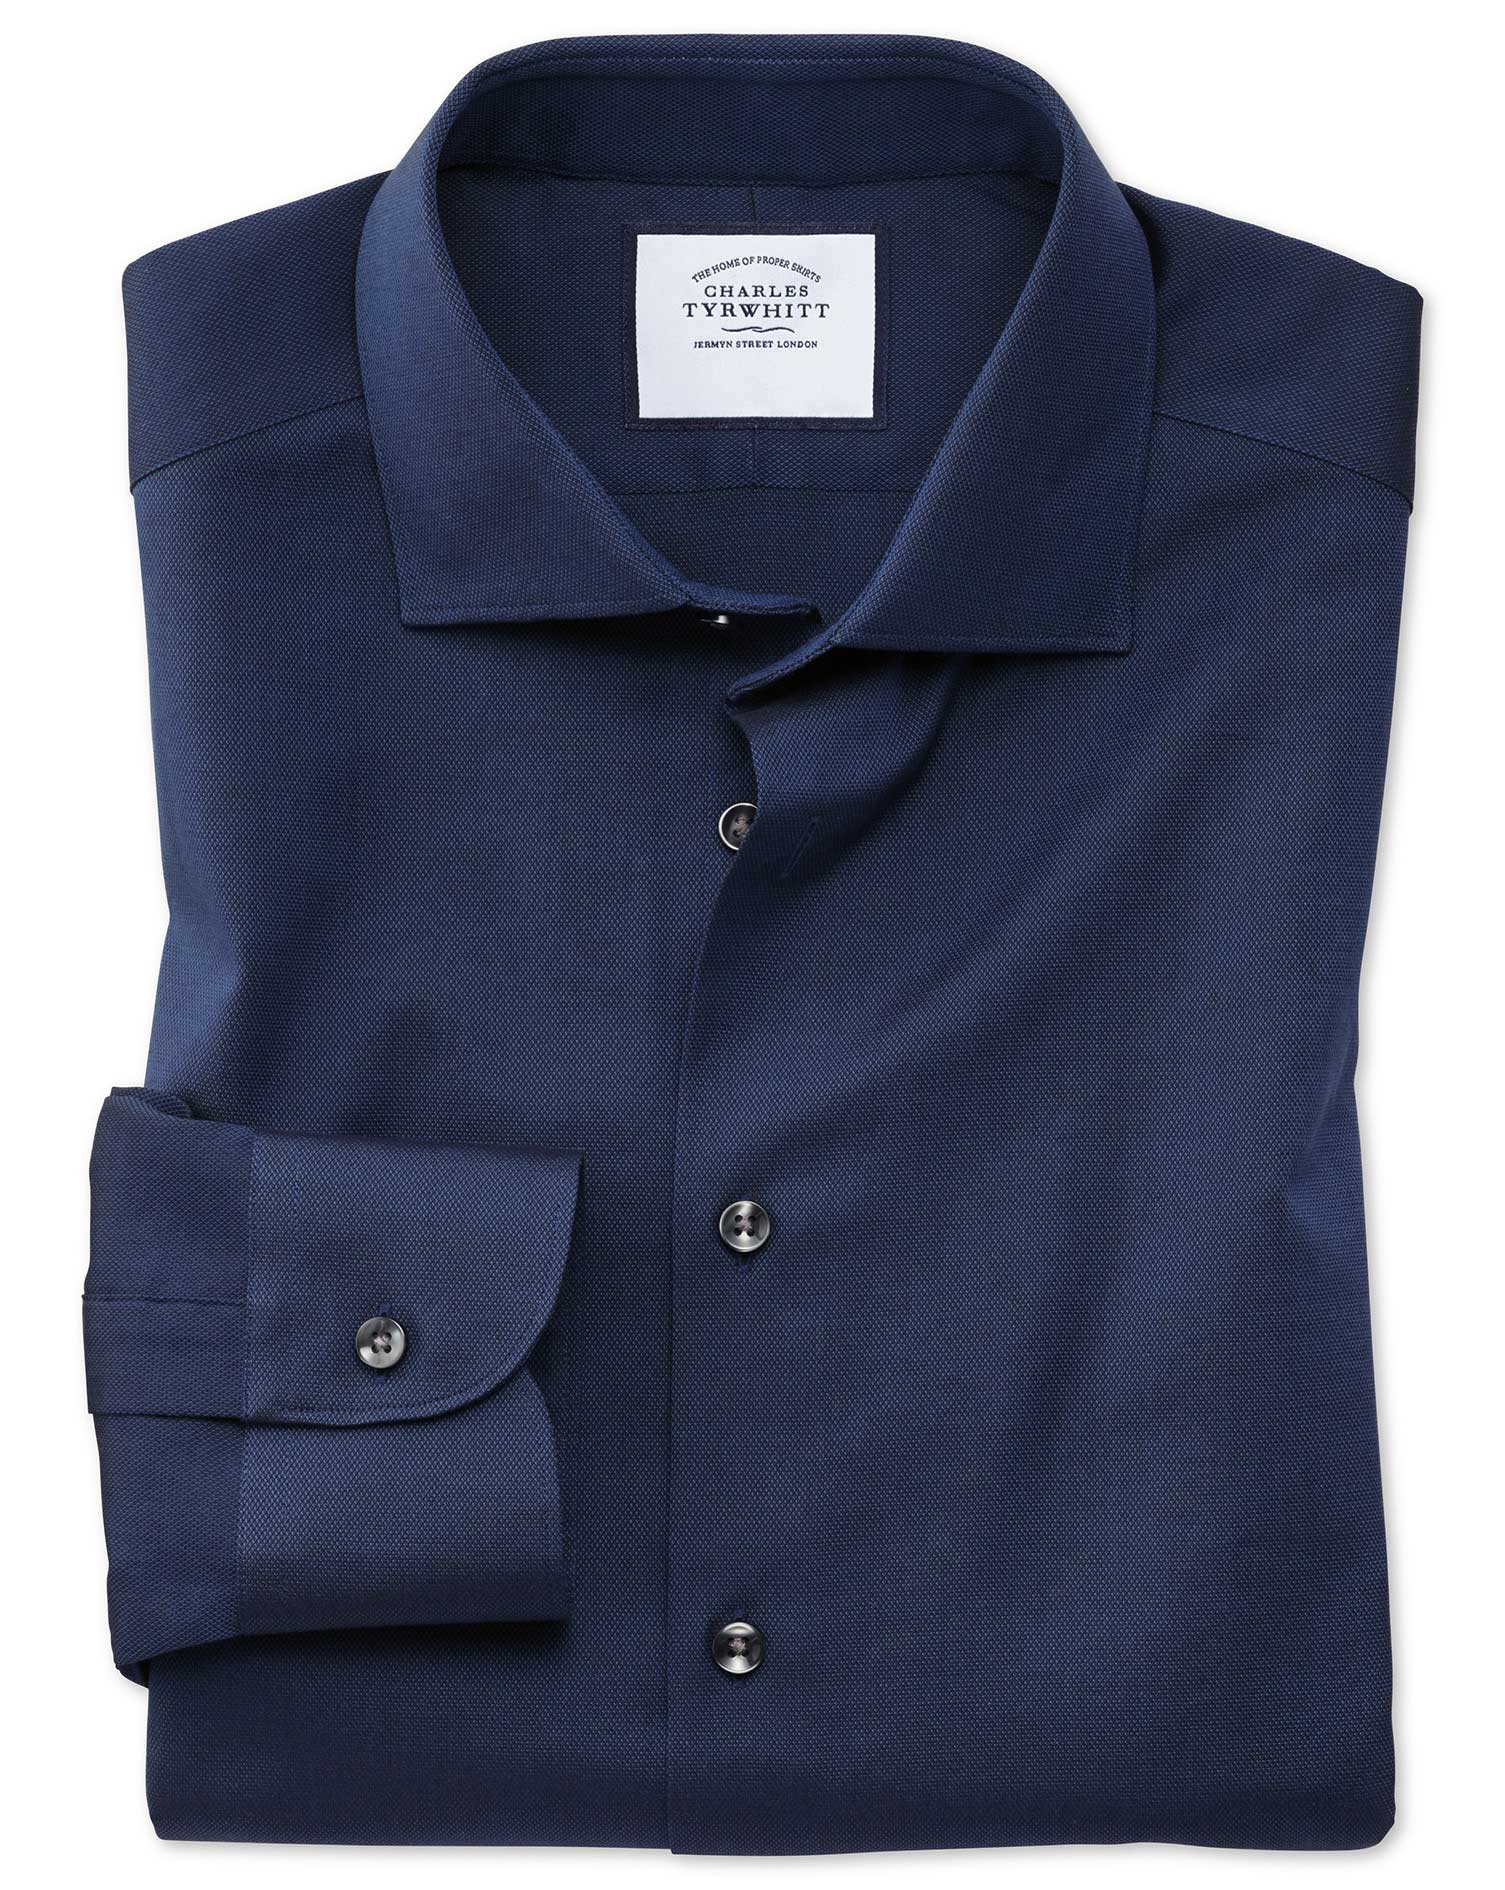 Extra Slim Fit Business Casual Navy Royal Oxford Cotton Formal Shirt Single Cuff Size 17/34 by Charl